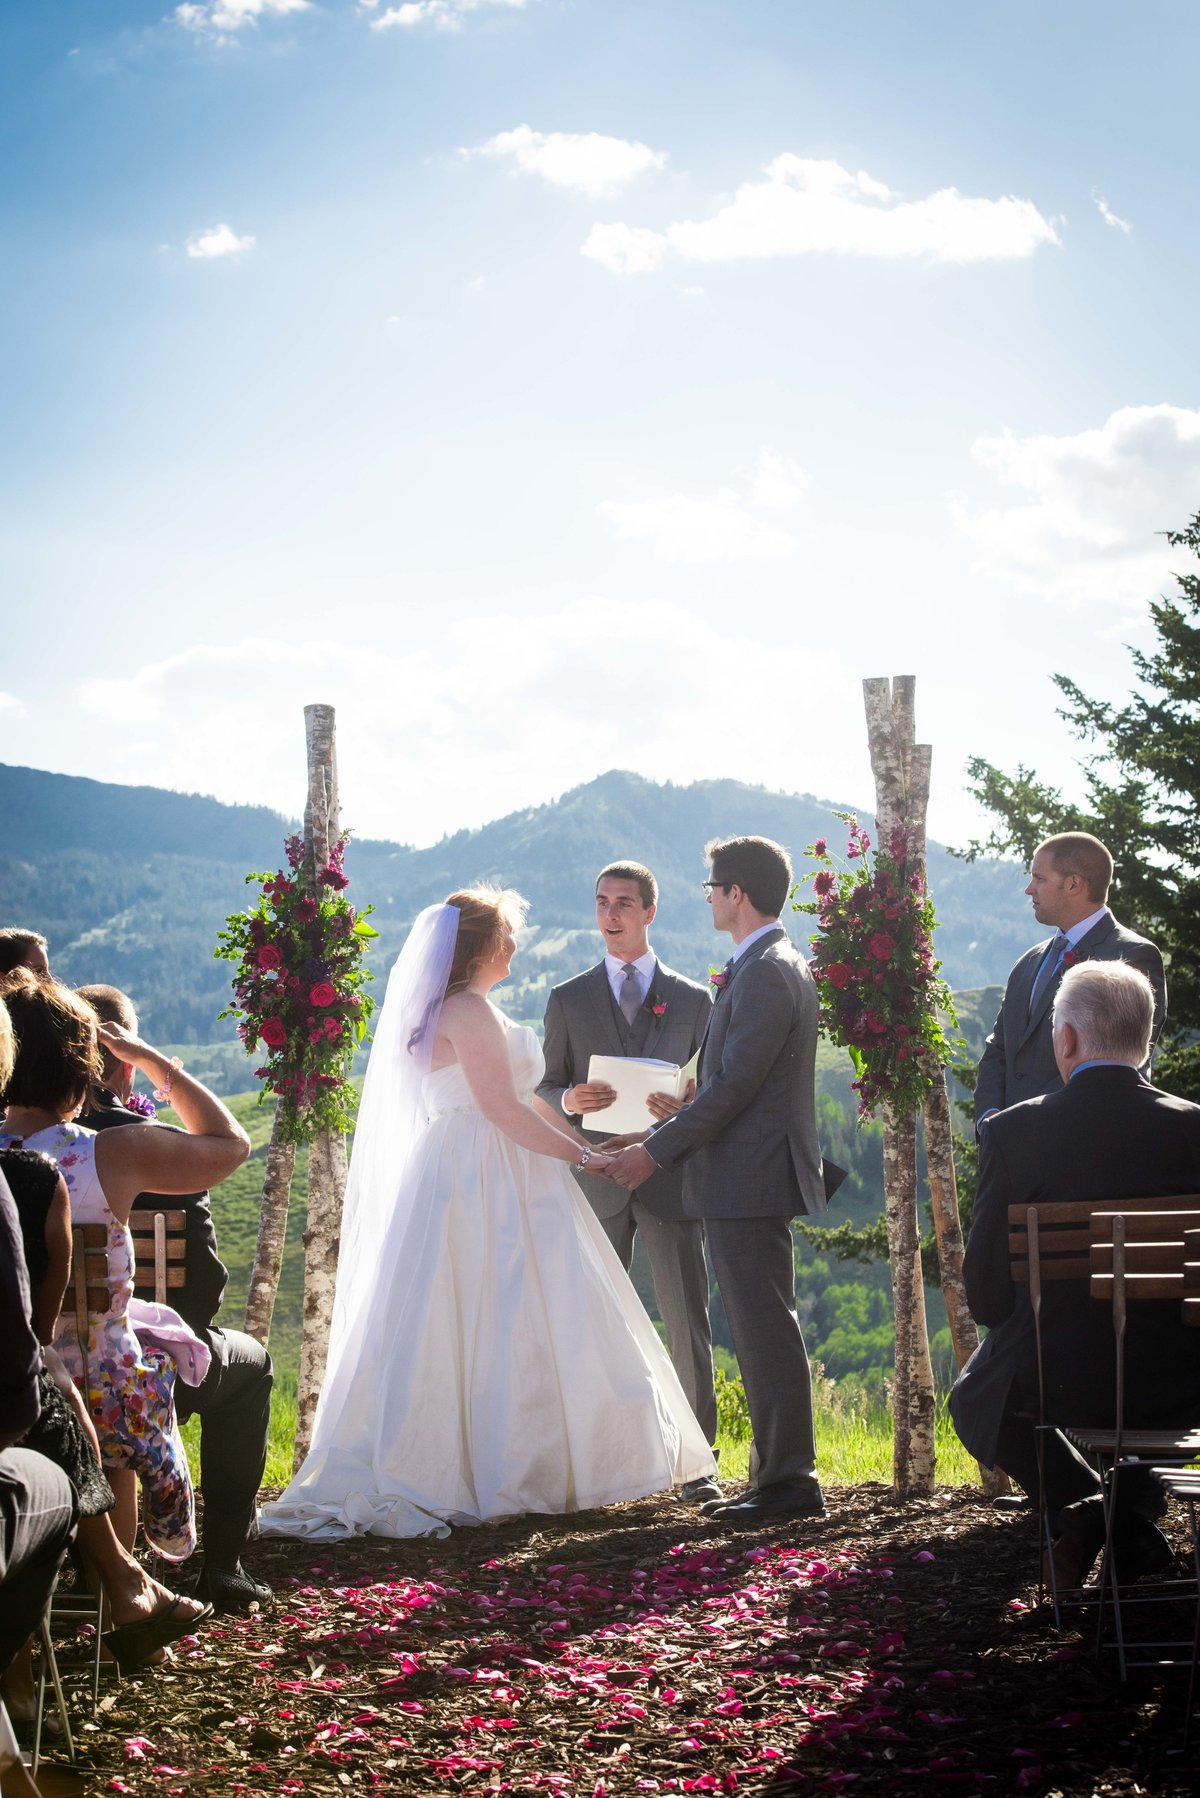 Wedding ceremony on mountaintop, Park City Utah.